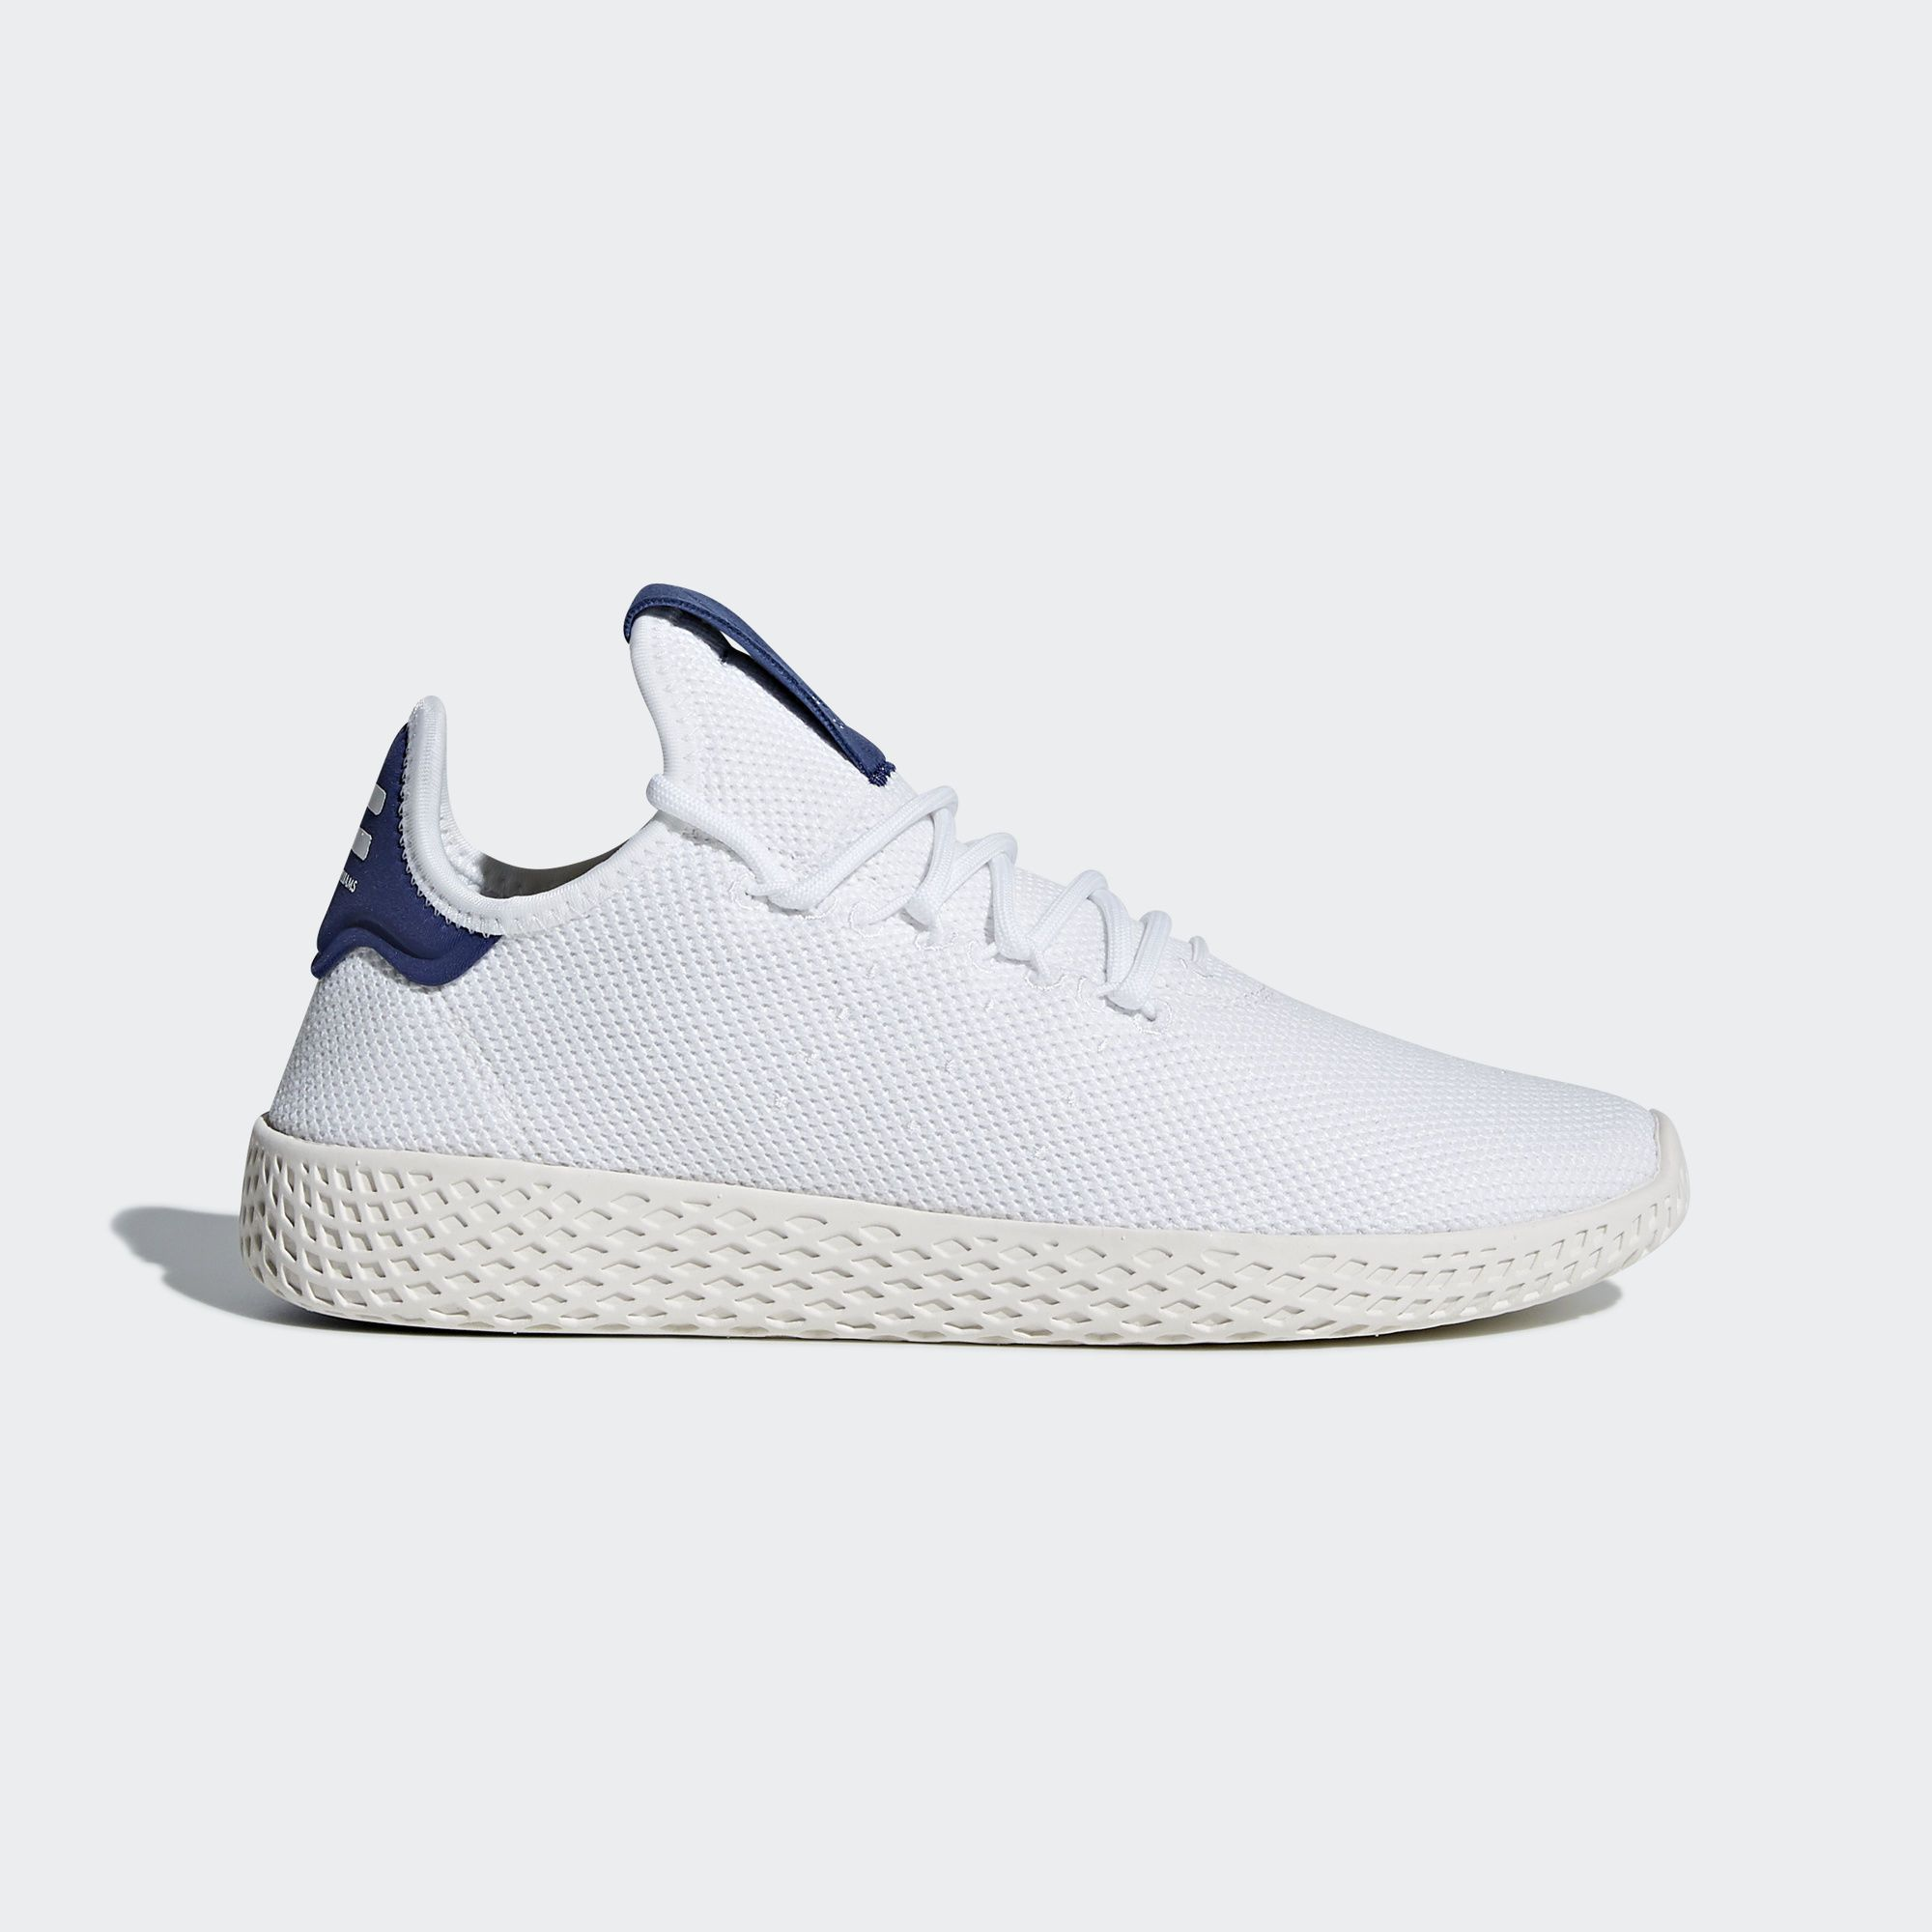 Shop the Pharrell Williams Tennis Hu Shoes - White at adidas ...